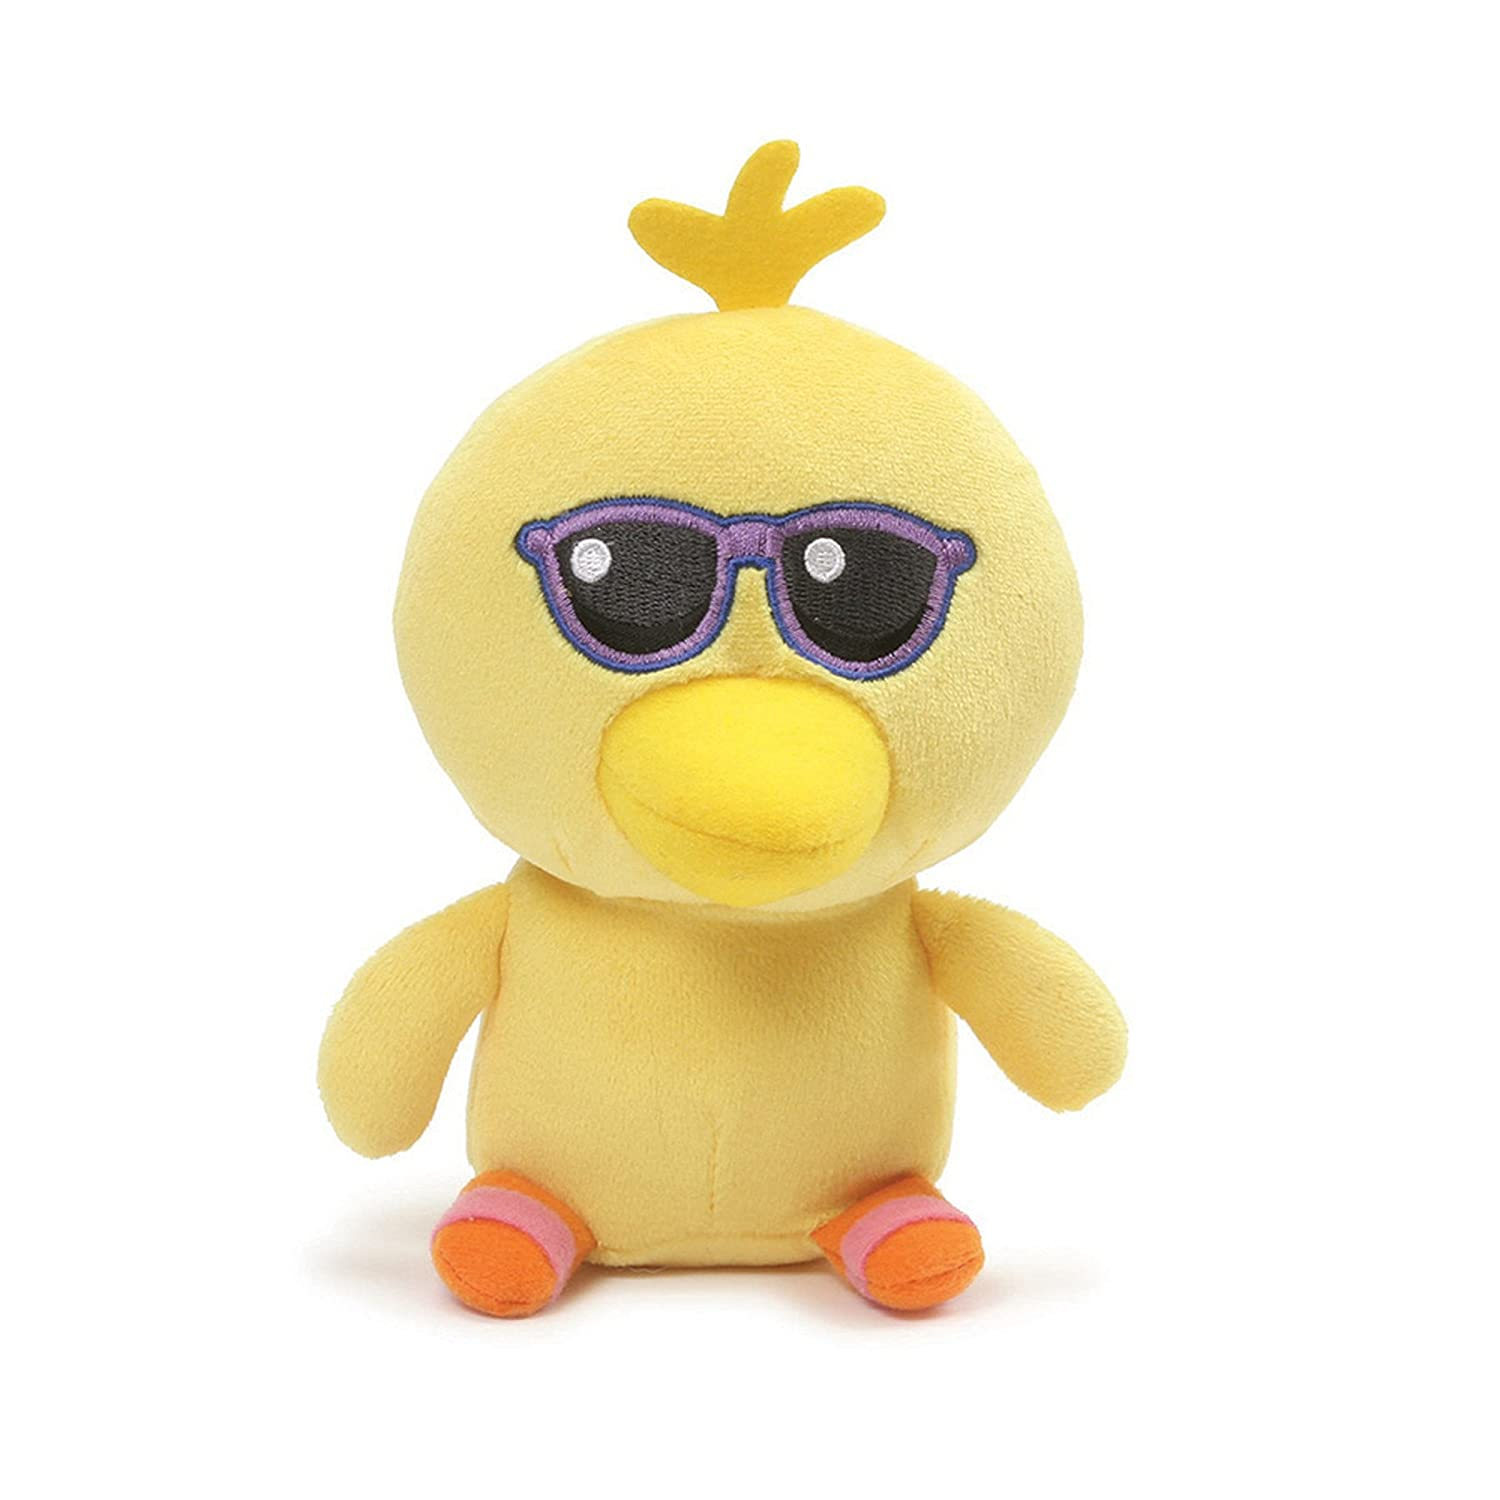 Amazon.com: GUND Sesame Street Big Bird Emoji - Peluche de ...